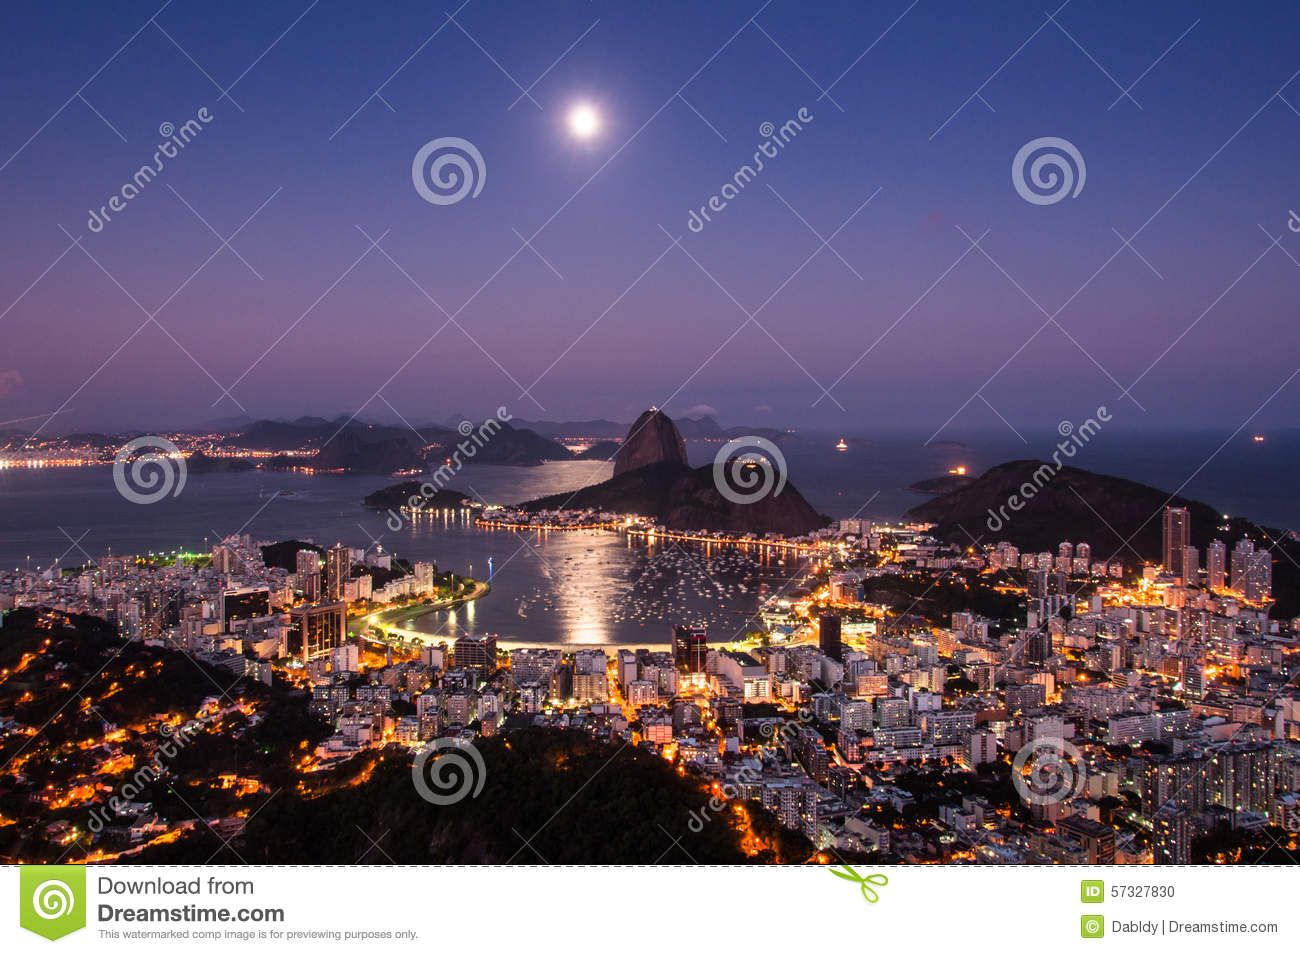 Rio de Janeiro at Night with Moon in the Sky